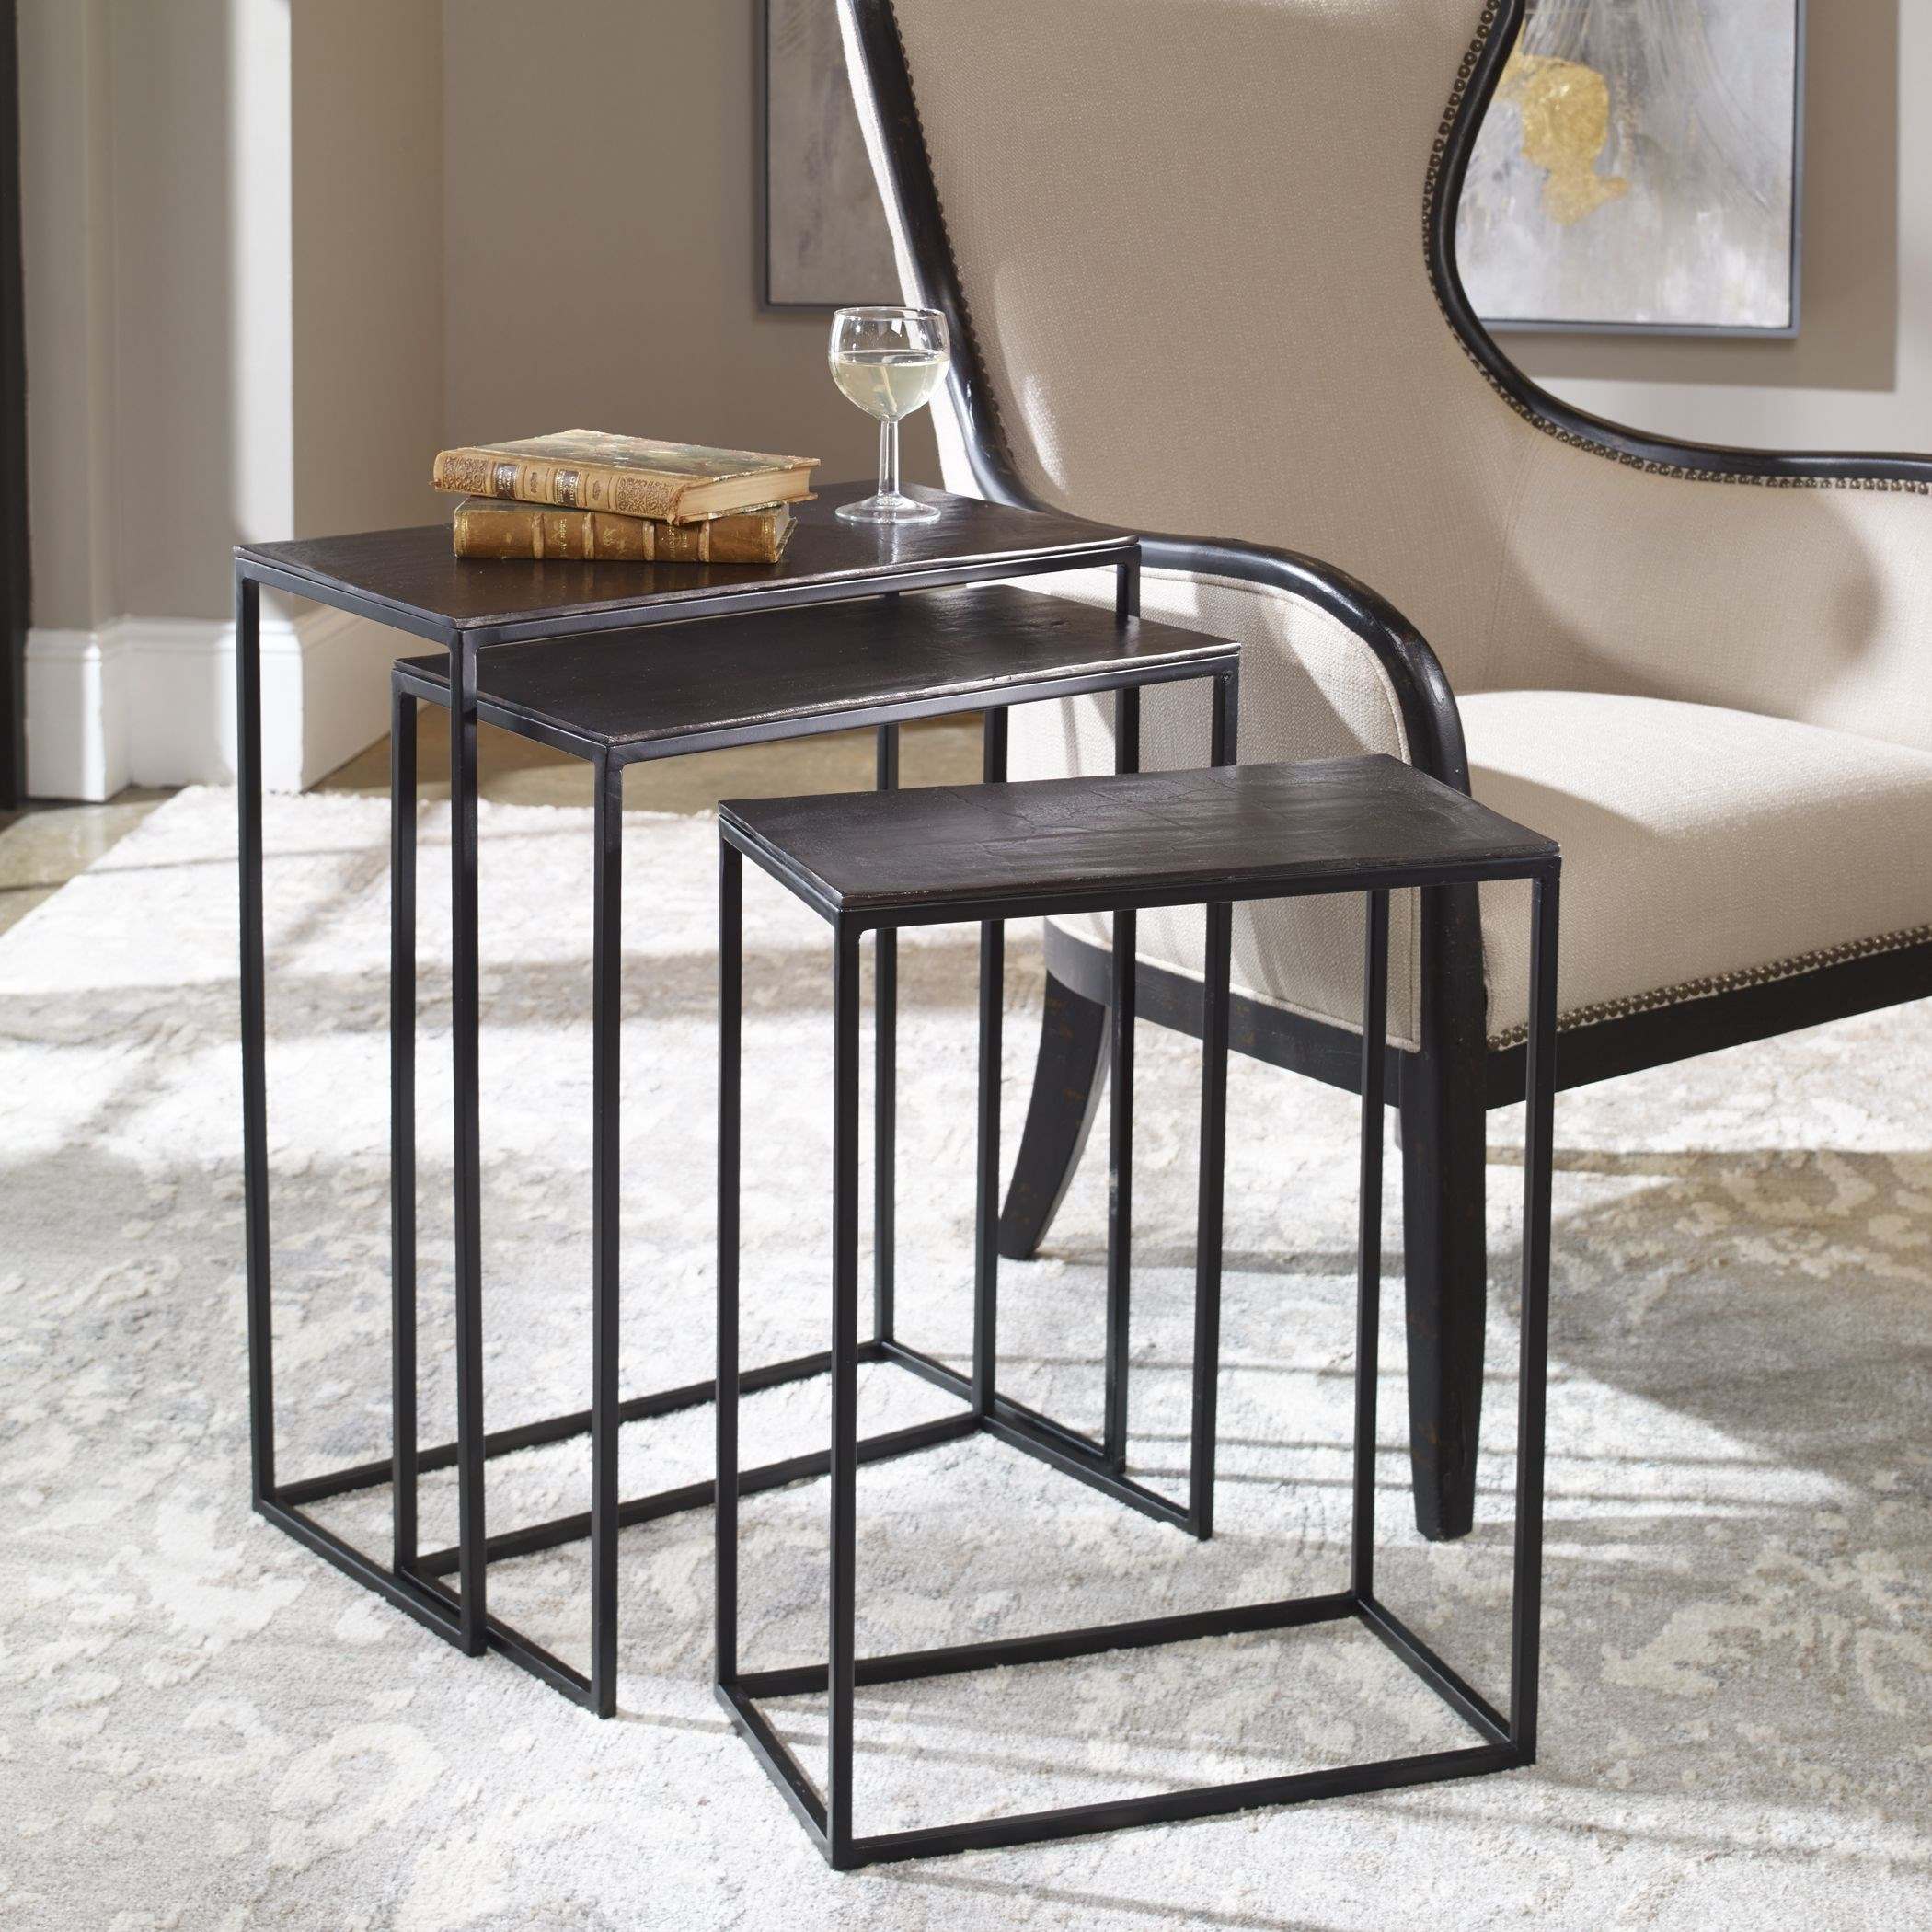 Accent Furniture - Occasional Tables Coreene Iron Nesting Tables S/3 by Uttermost at Factory Direct Furniture